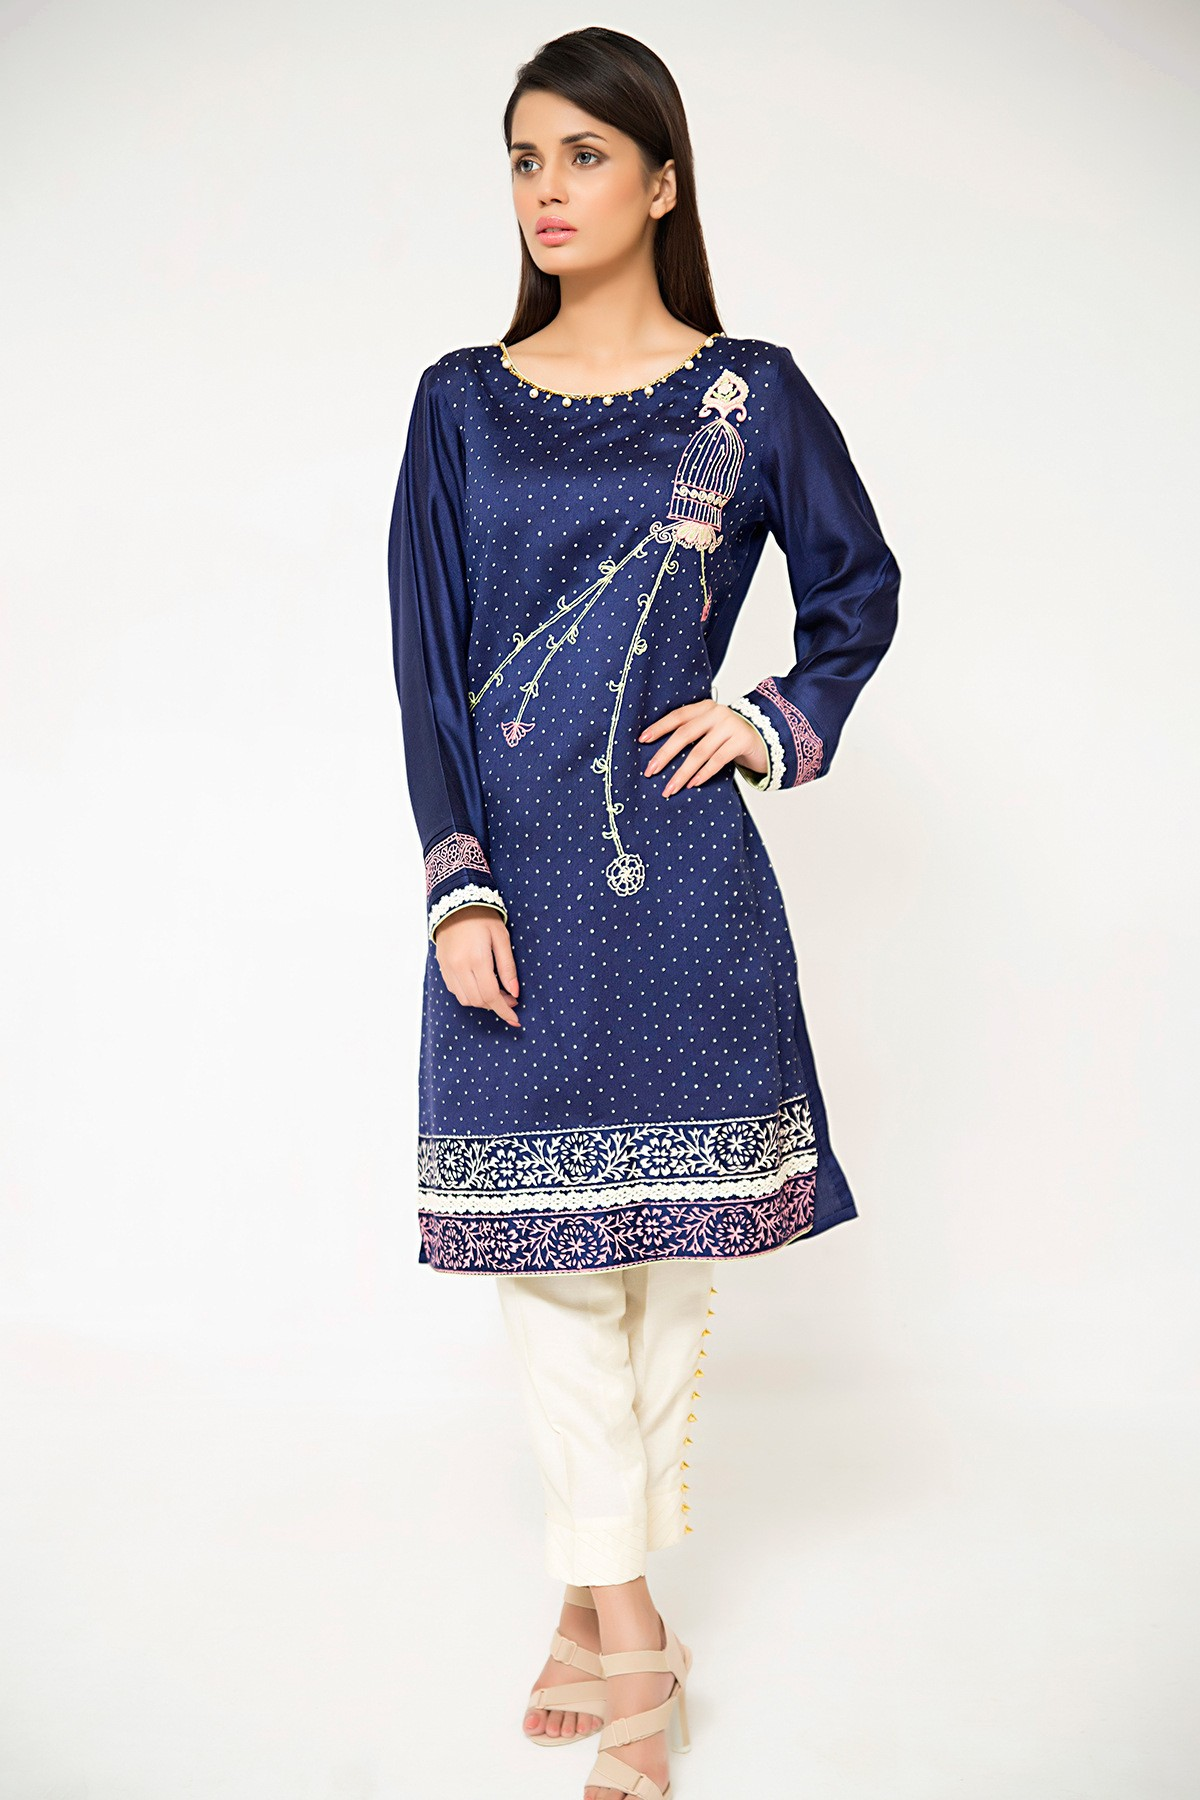 Sana Abbas Twillight Blue Dress for Eid